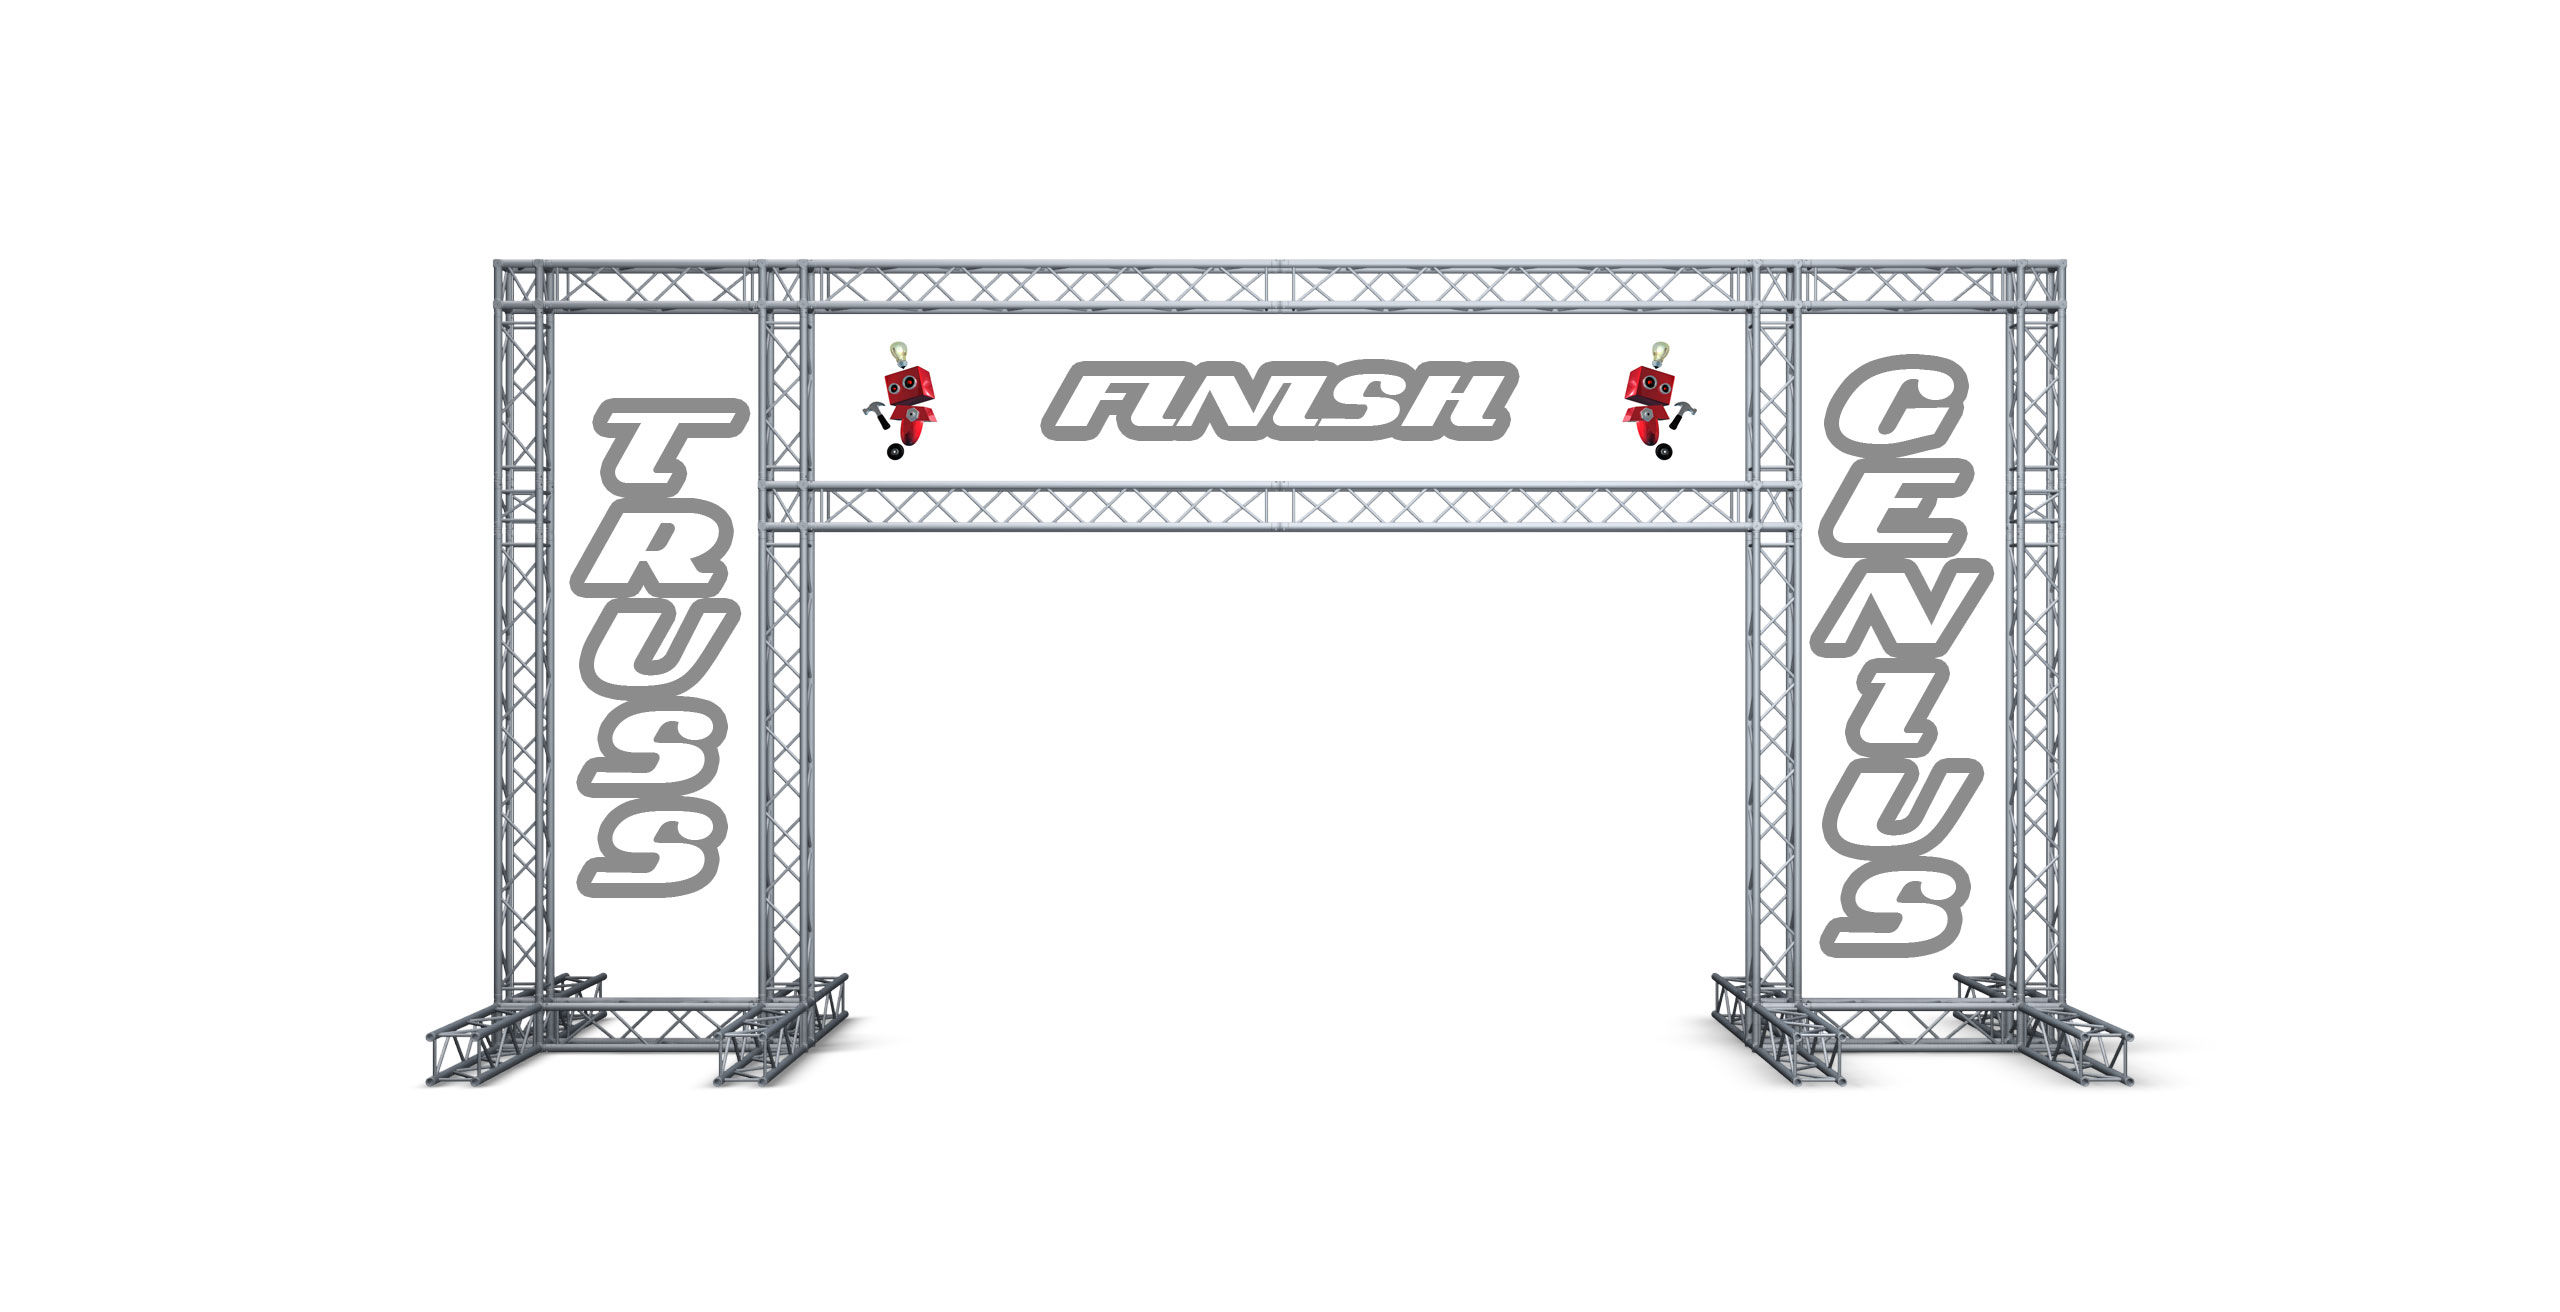 marathon finish line, truss finish line, global truss, milos, starting line, 5k run, aluminum truss, truss genius